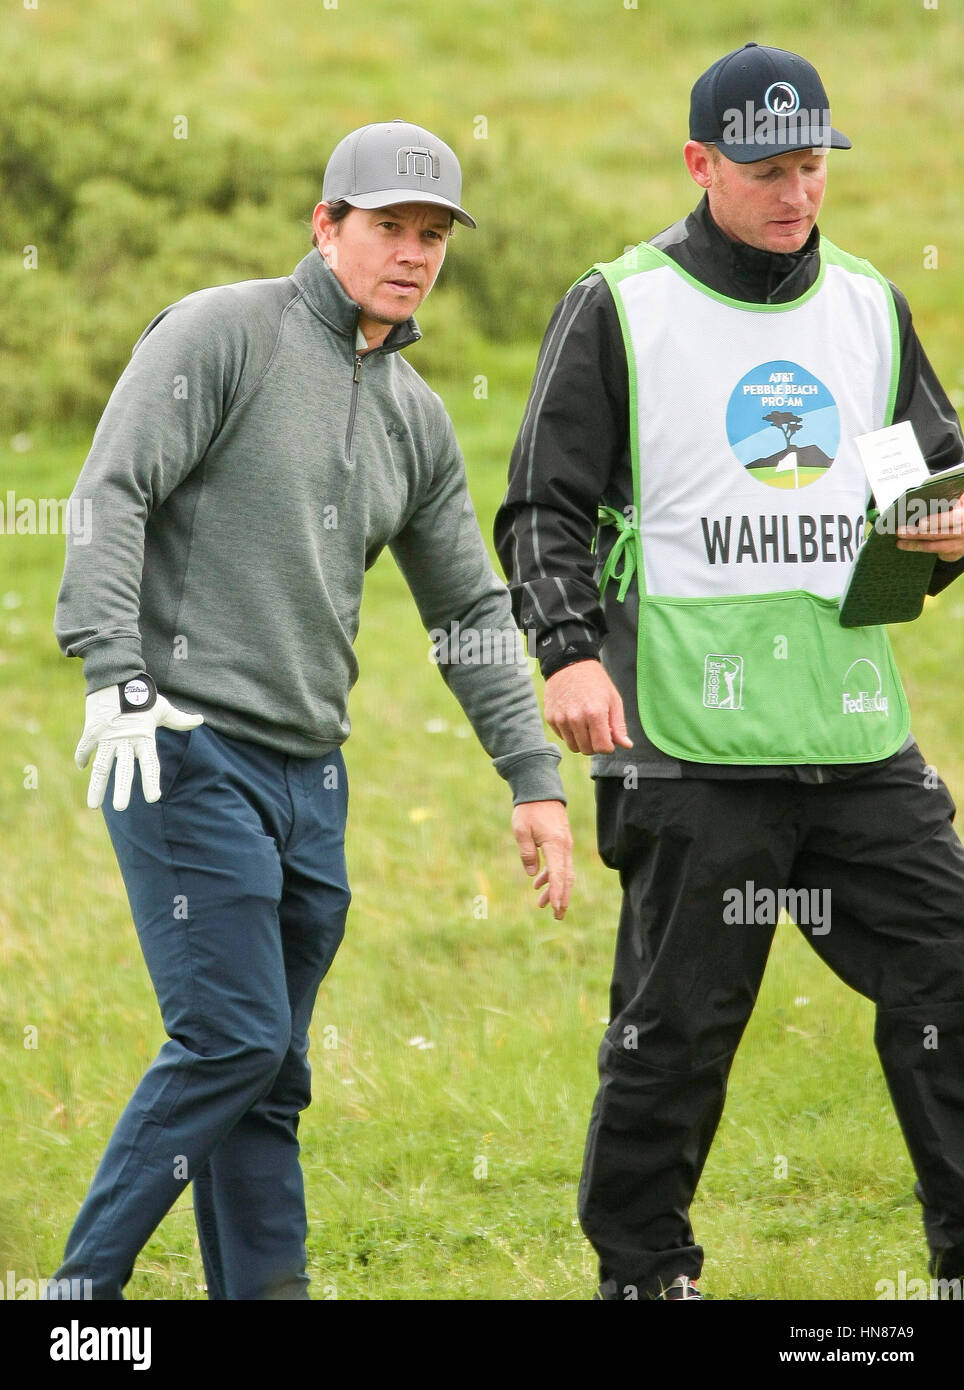 Pebble Beach, California, USA. 9th February, 2017.  Mark Wahlberg and caddy looking for his lost ball on the first - Stock Image